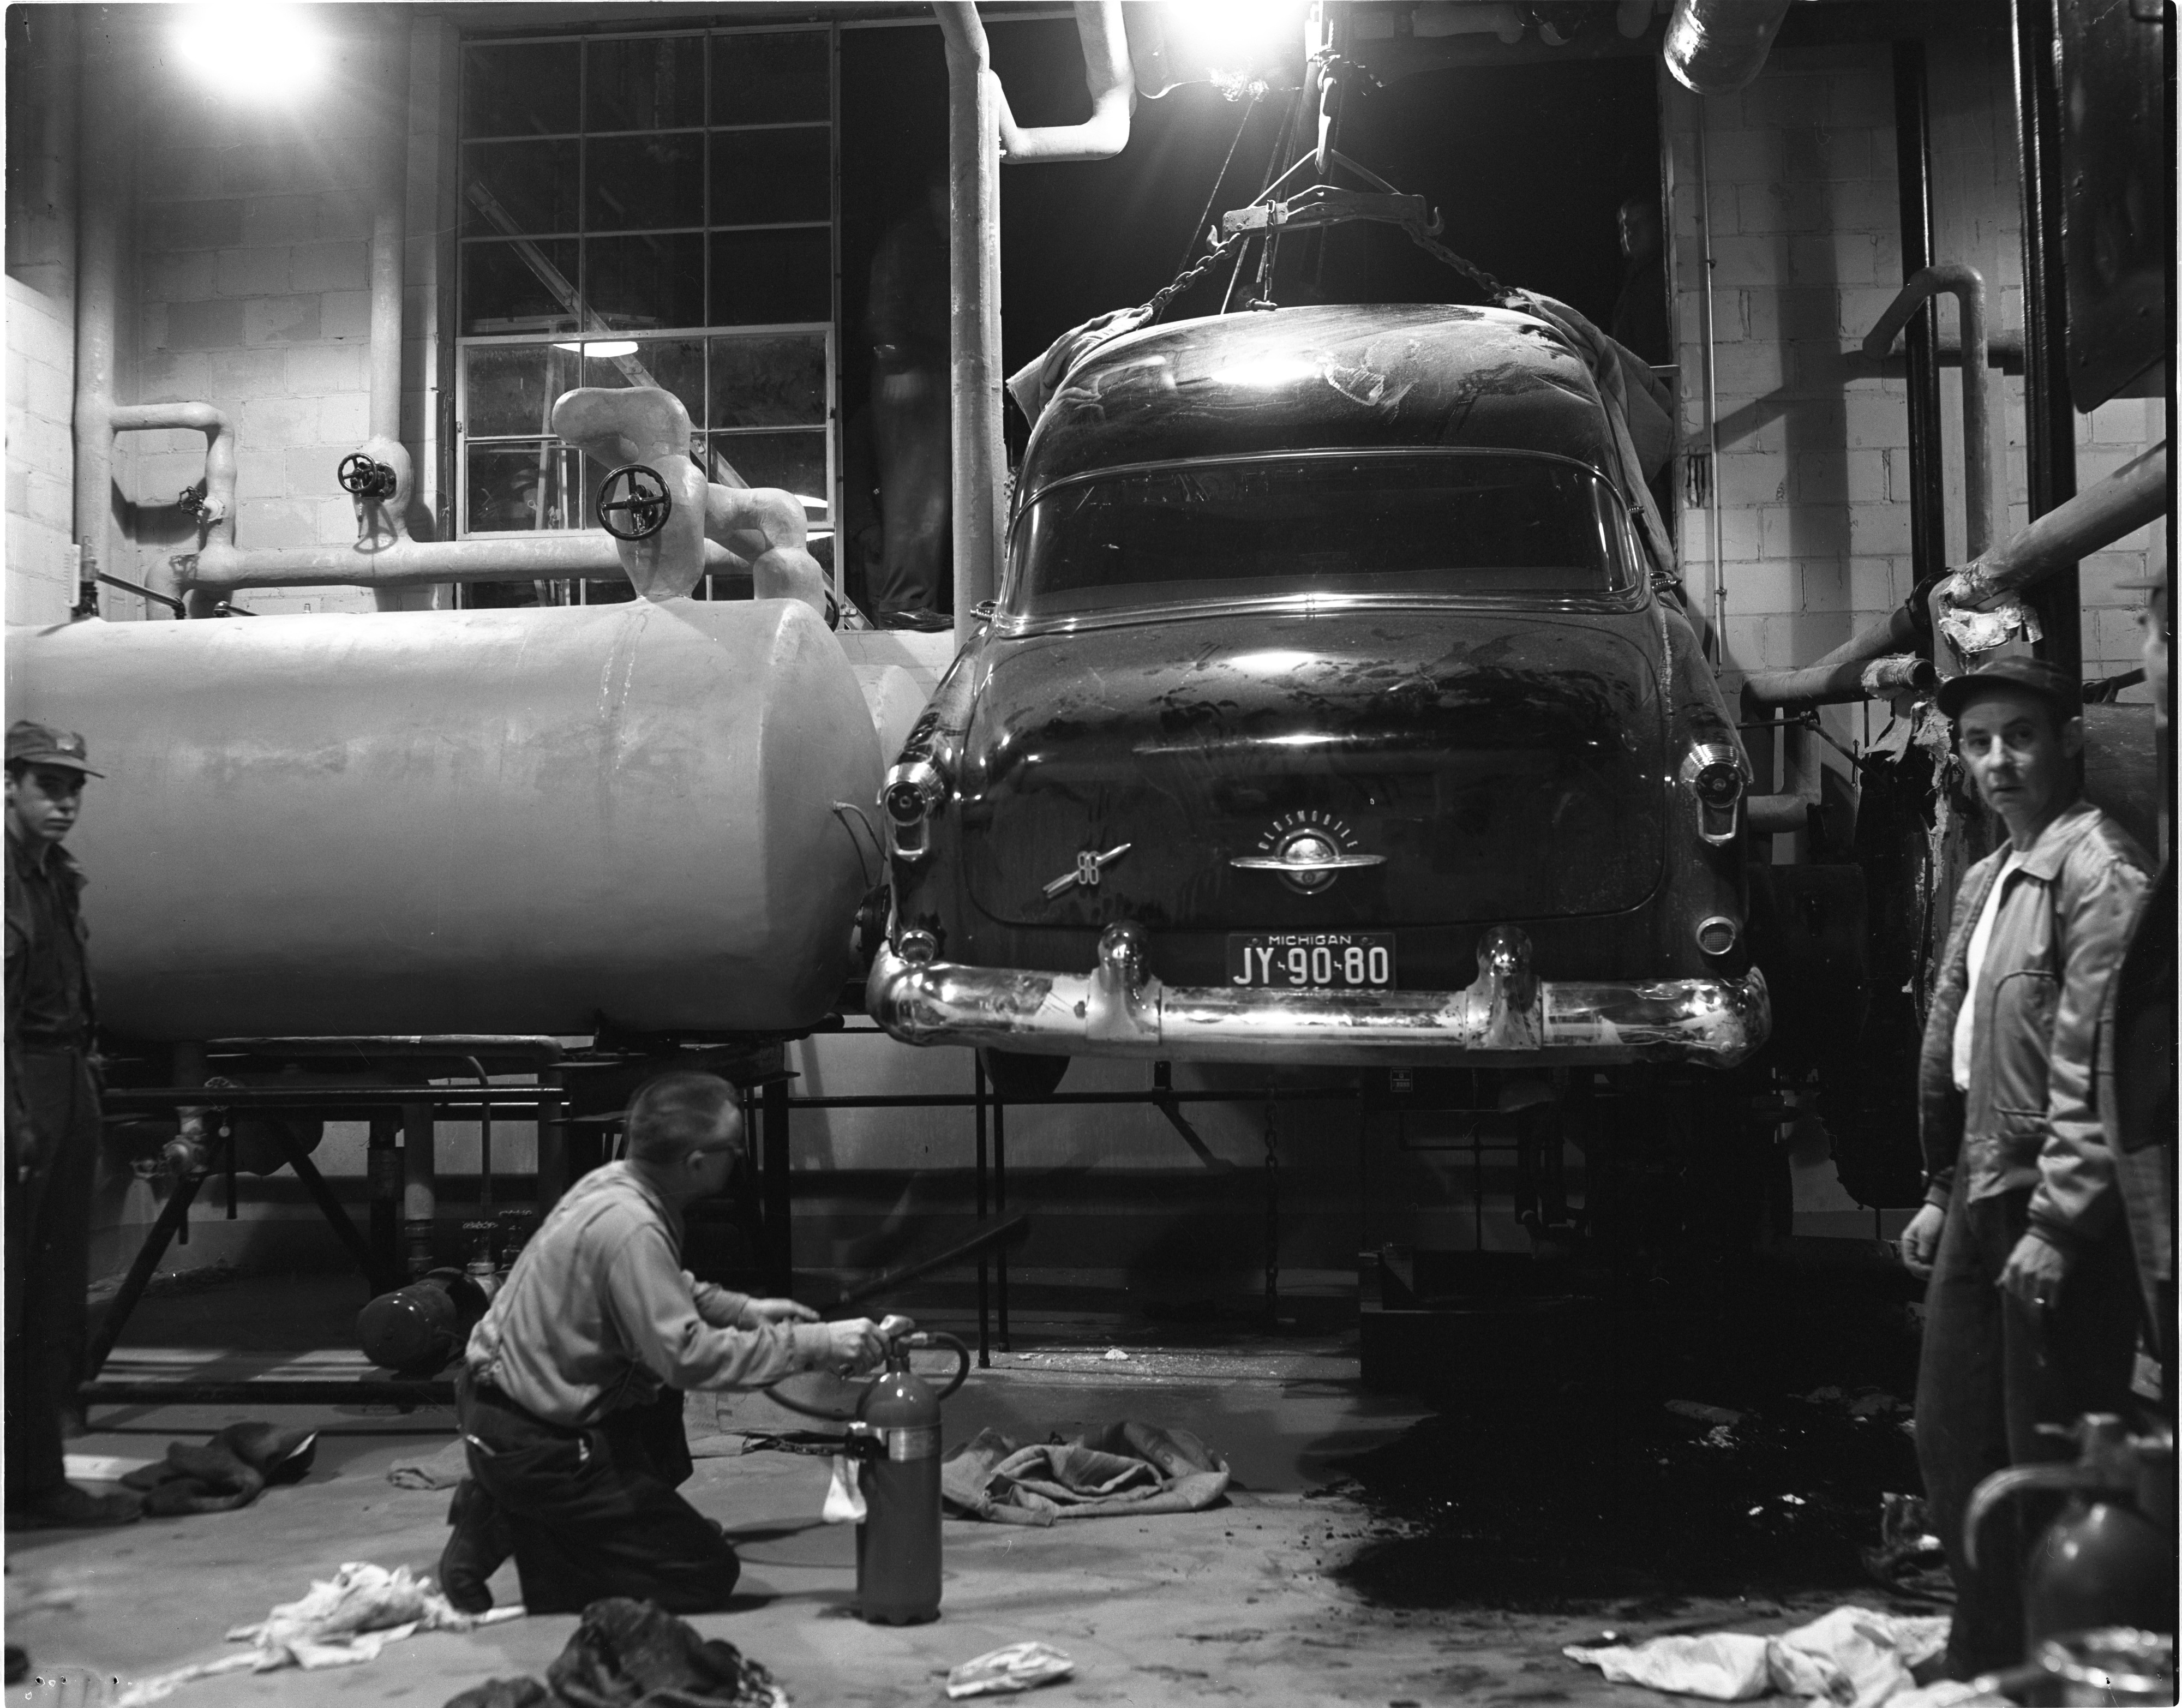 Car Is Removed From Mercywood Hospital Basement, November 1953 image